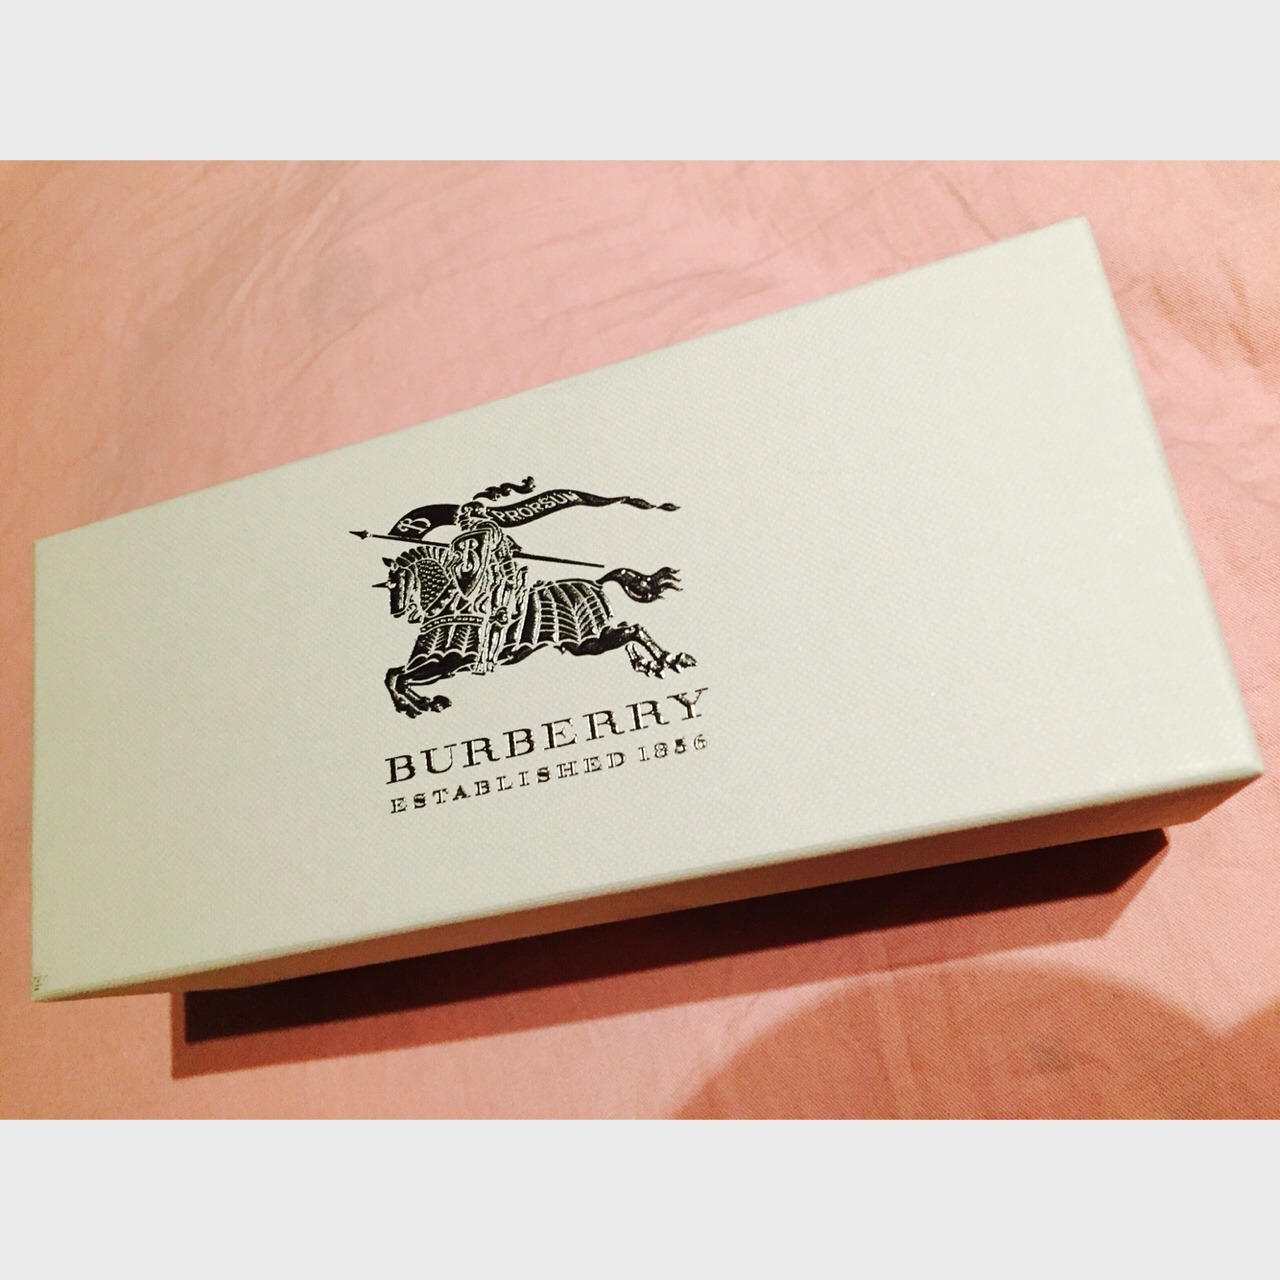 burberry clearance outlet online  burberry_